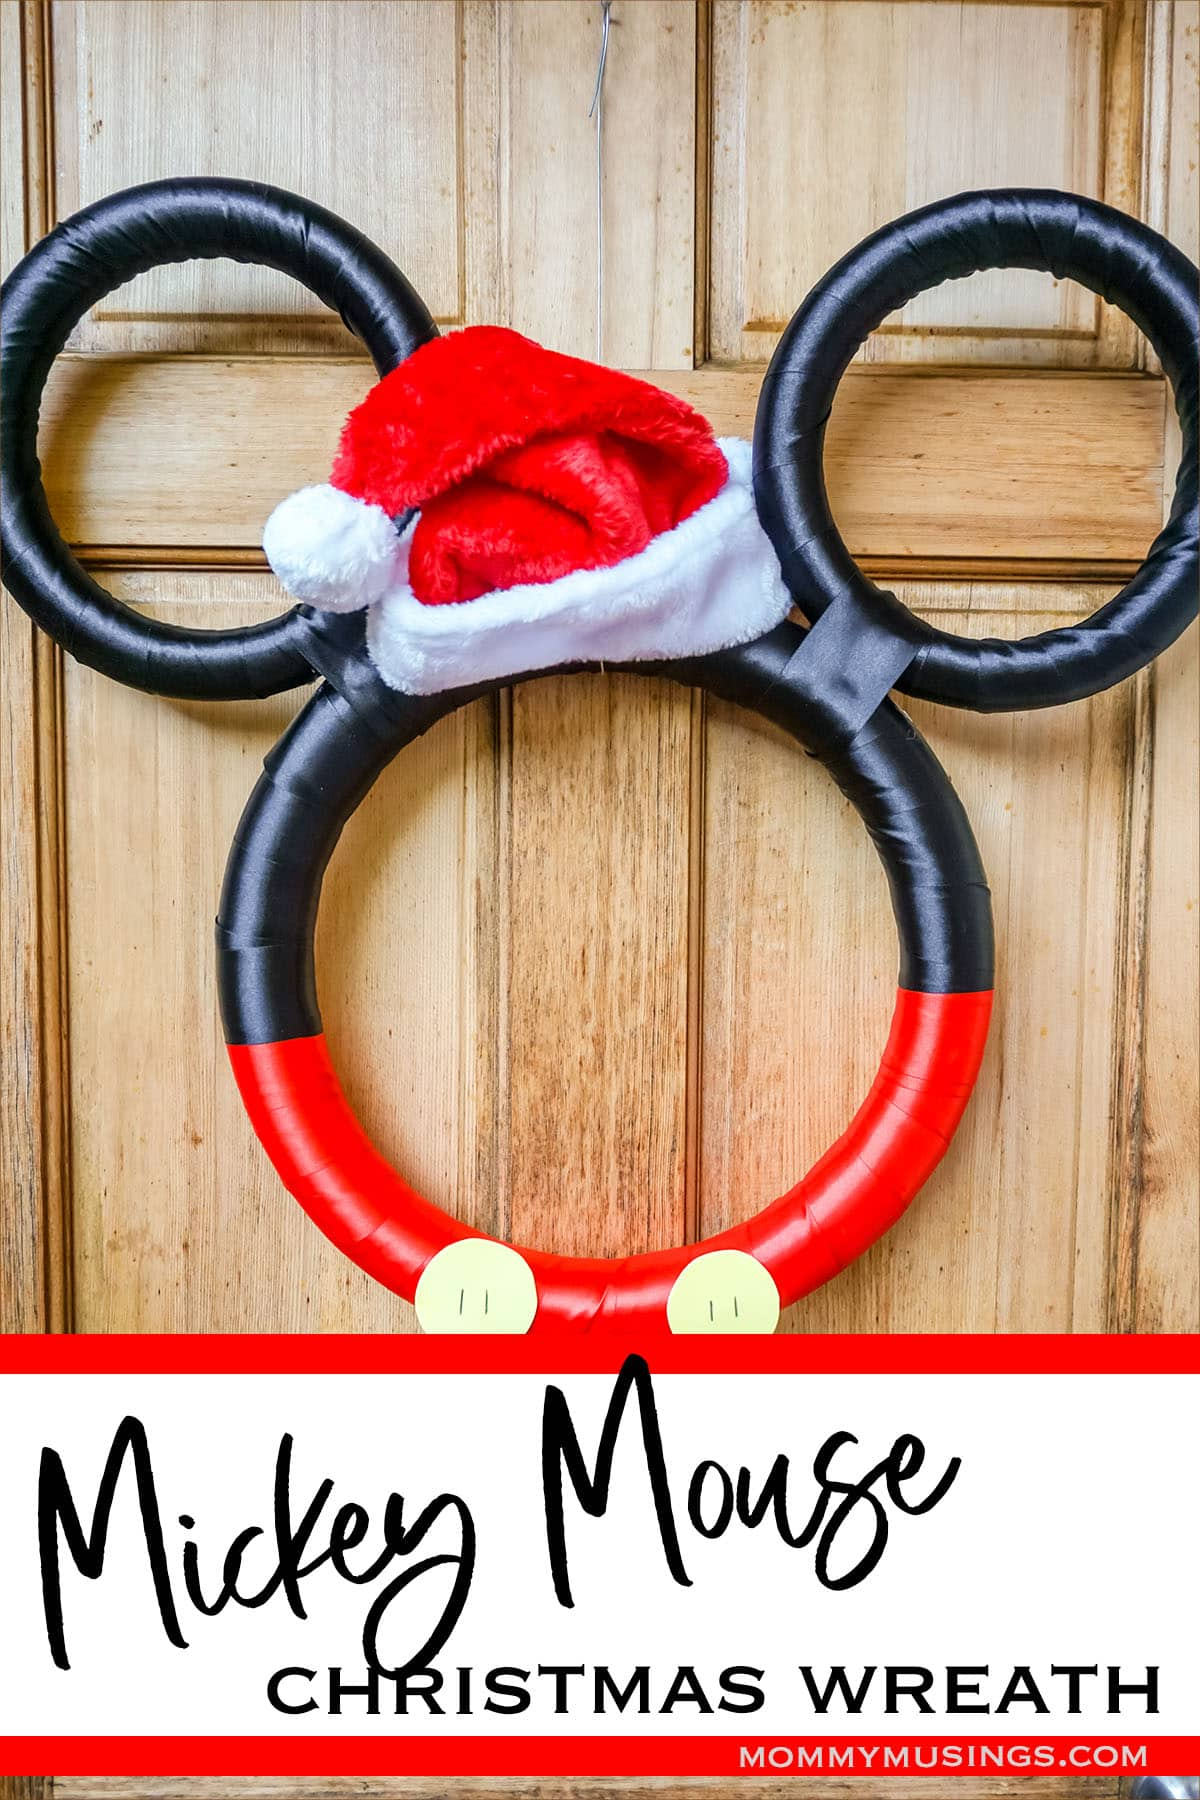 mickey holiday wreath with text which reads mickey mouse christmas wreath